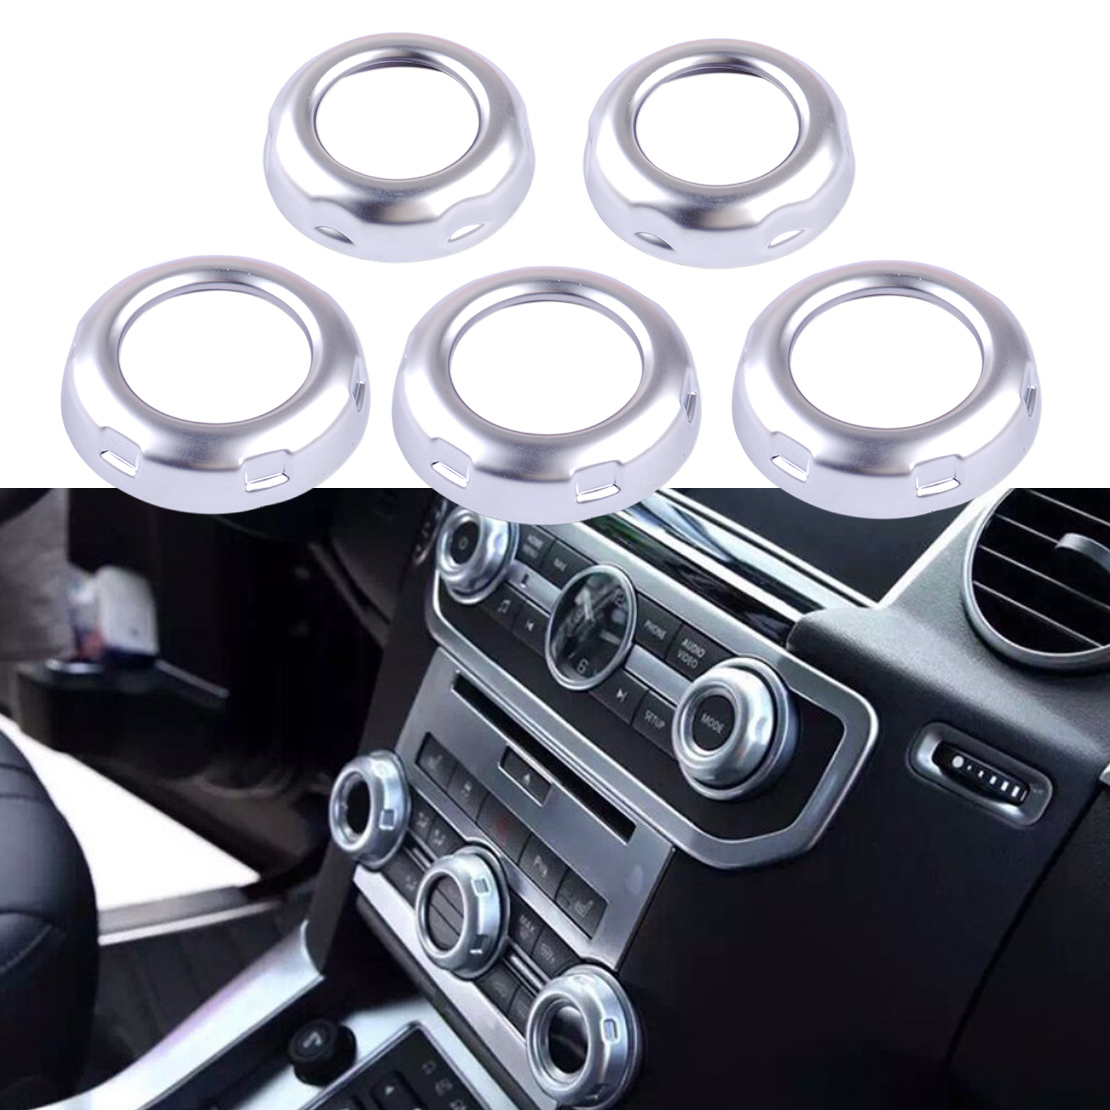 beler 5pcs Dashboard Console Switch Button Ring Cover Trim fit for Land Rover Discovery 4 LR4 Range Rover Sport 2010 2011 2012 carbon fiber style abs plastic for land rover range rover evoque 12 17 center console gear panel decorative cover trim newest